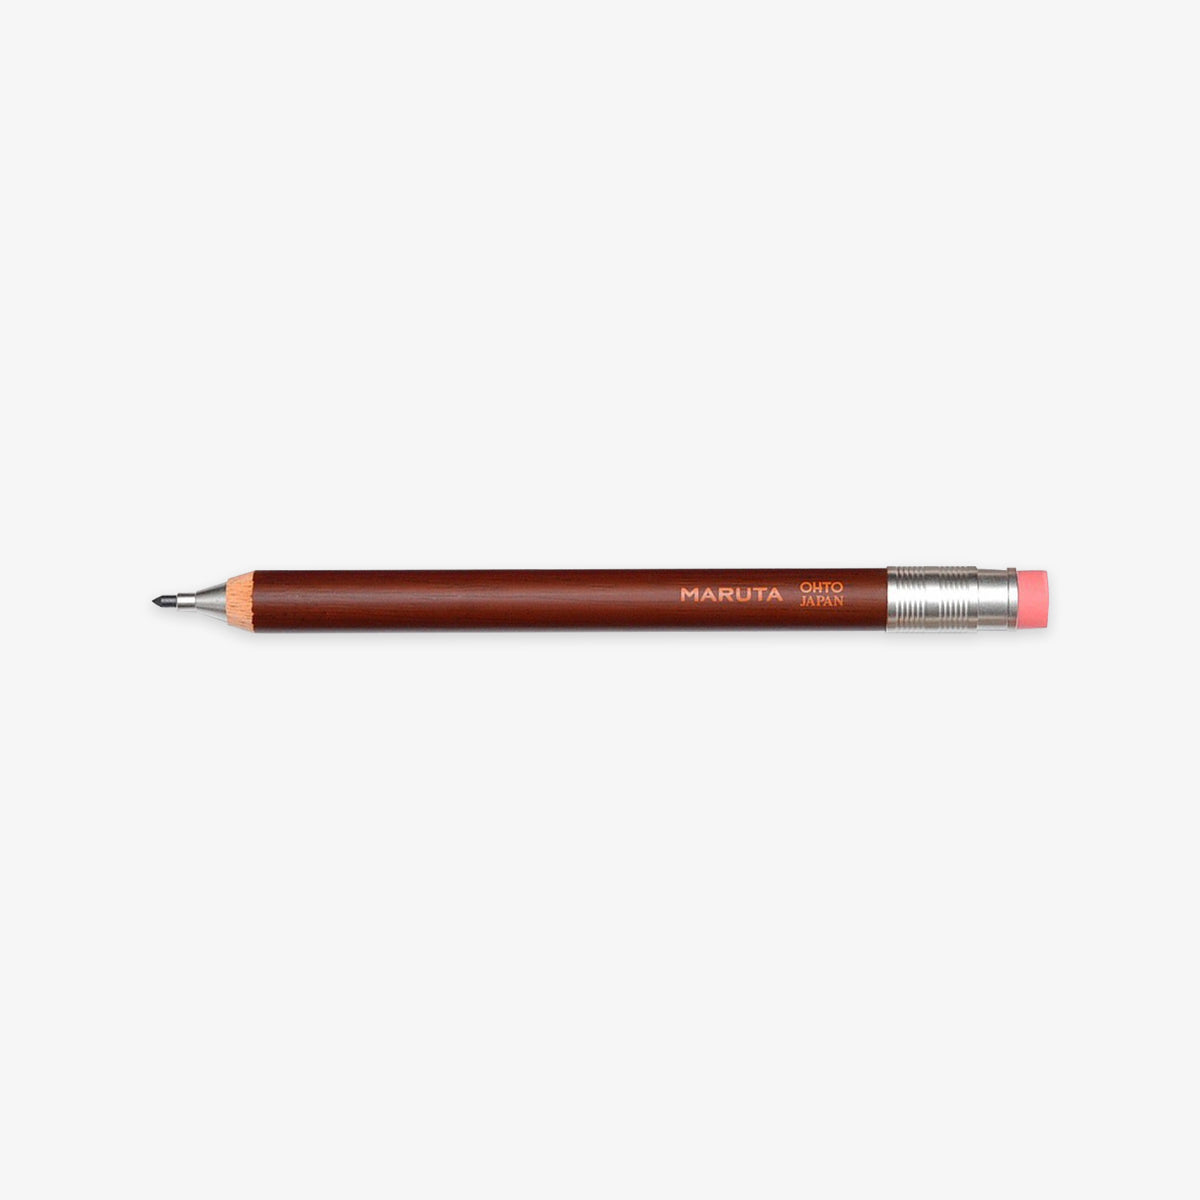 MARUTA MECHANICAL PENCIL 2.0mm // BROWN